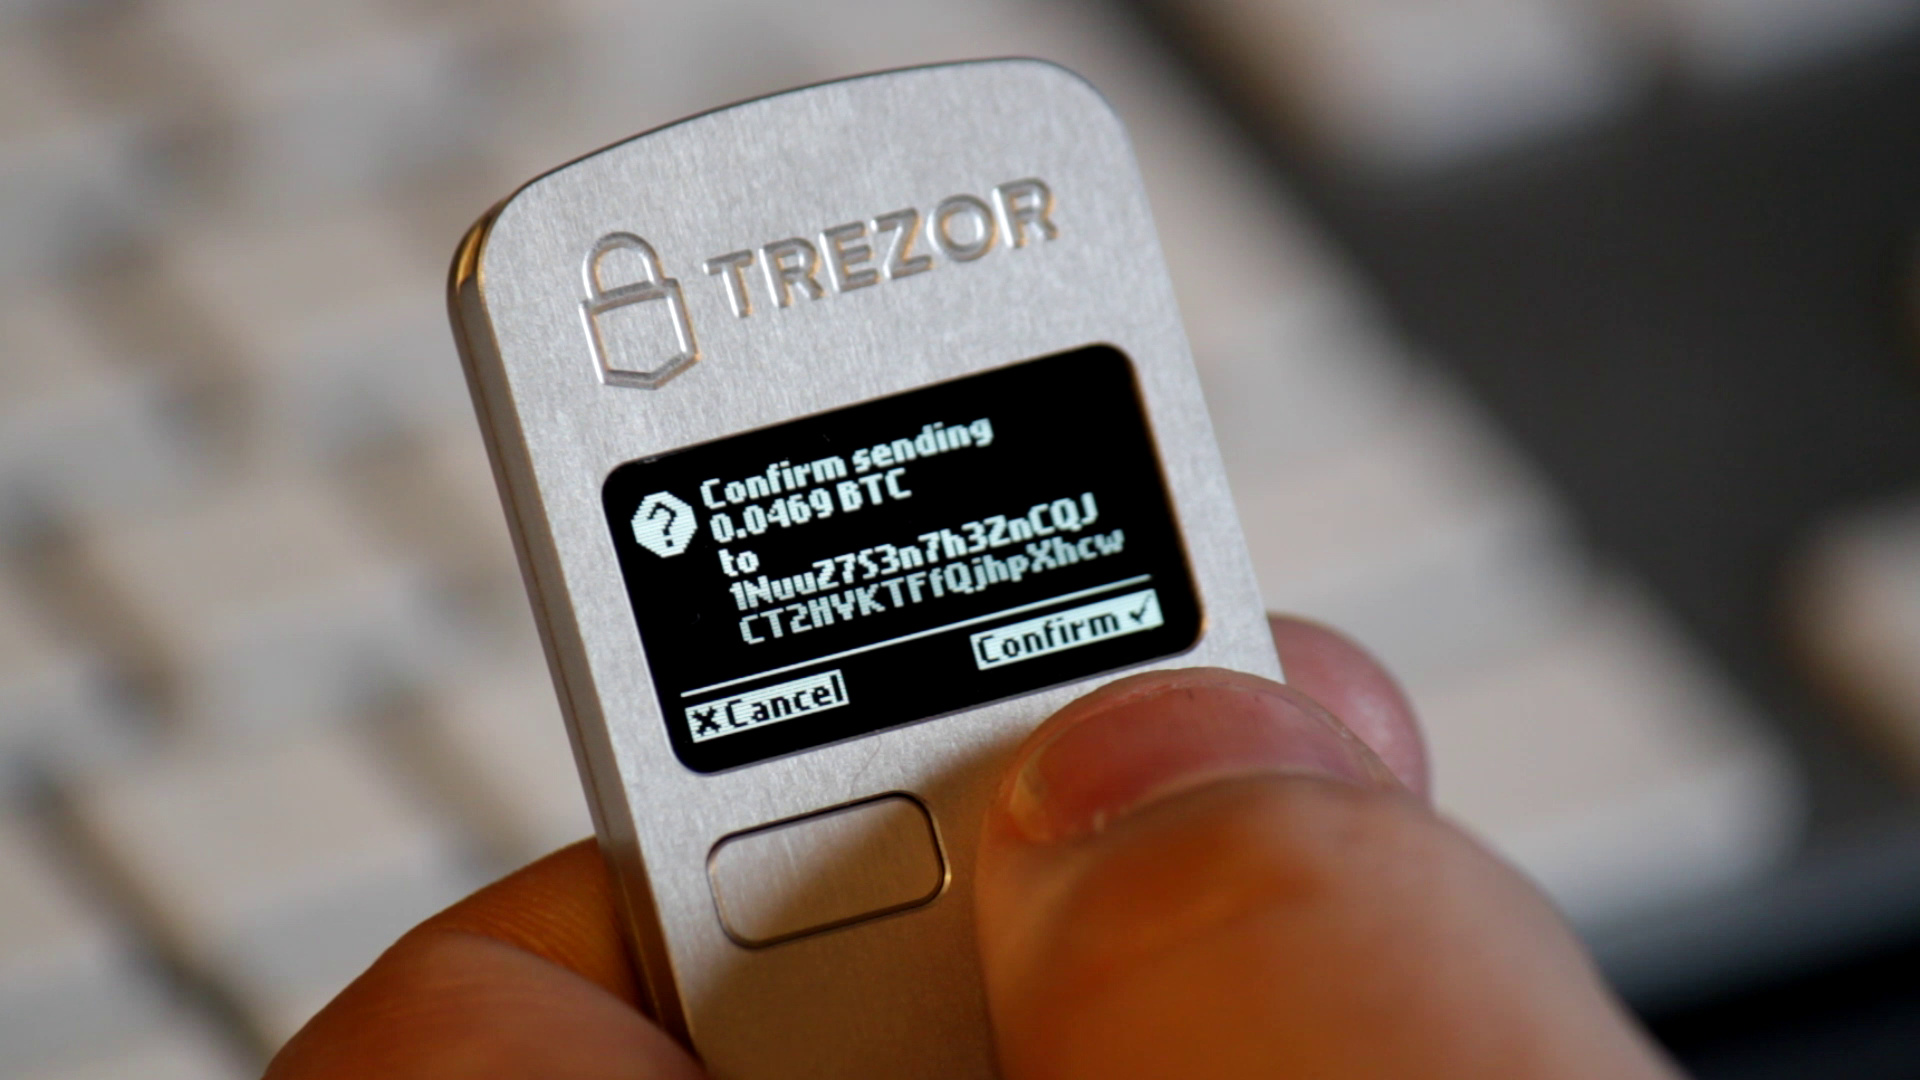 be77a78c1f Confirming the transaction with Trezor